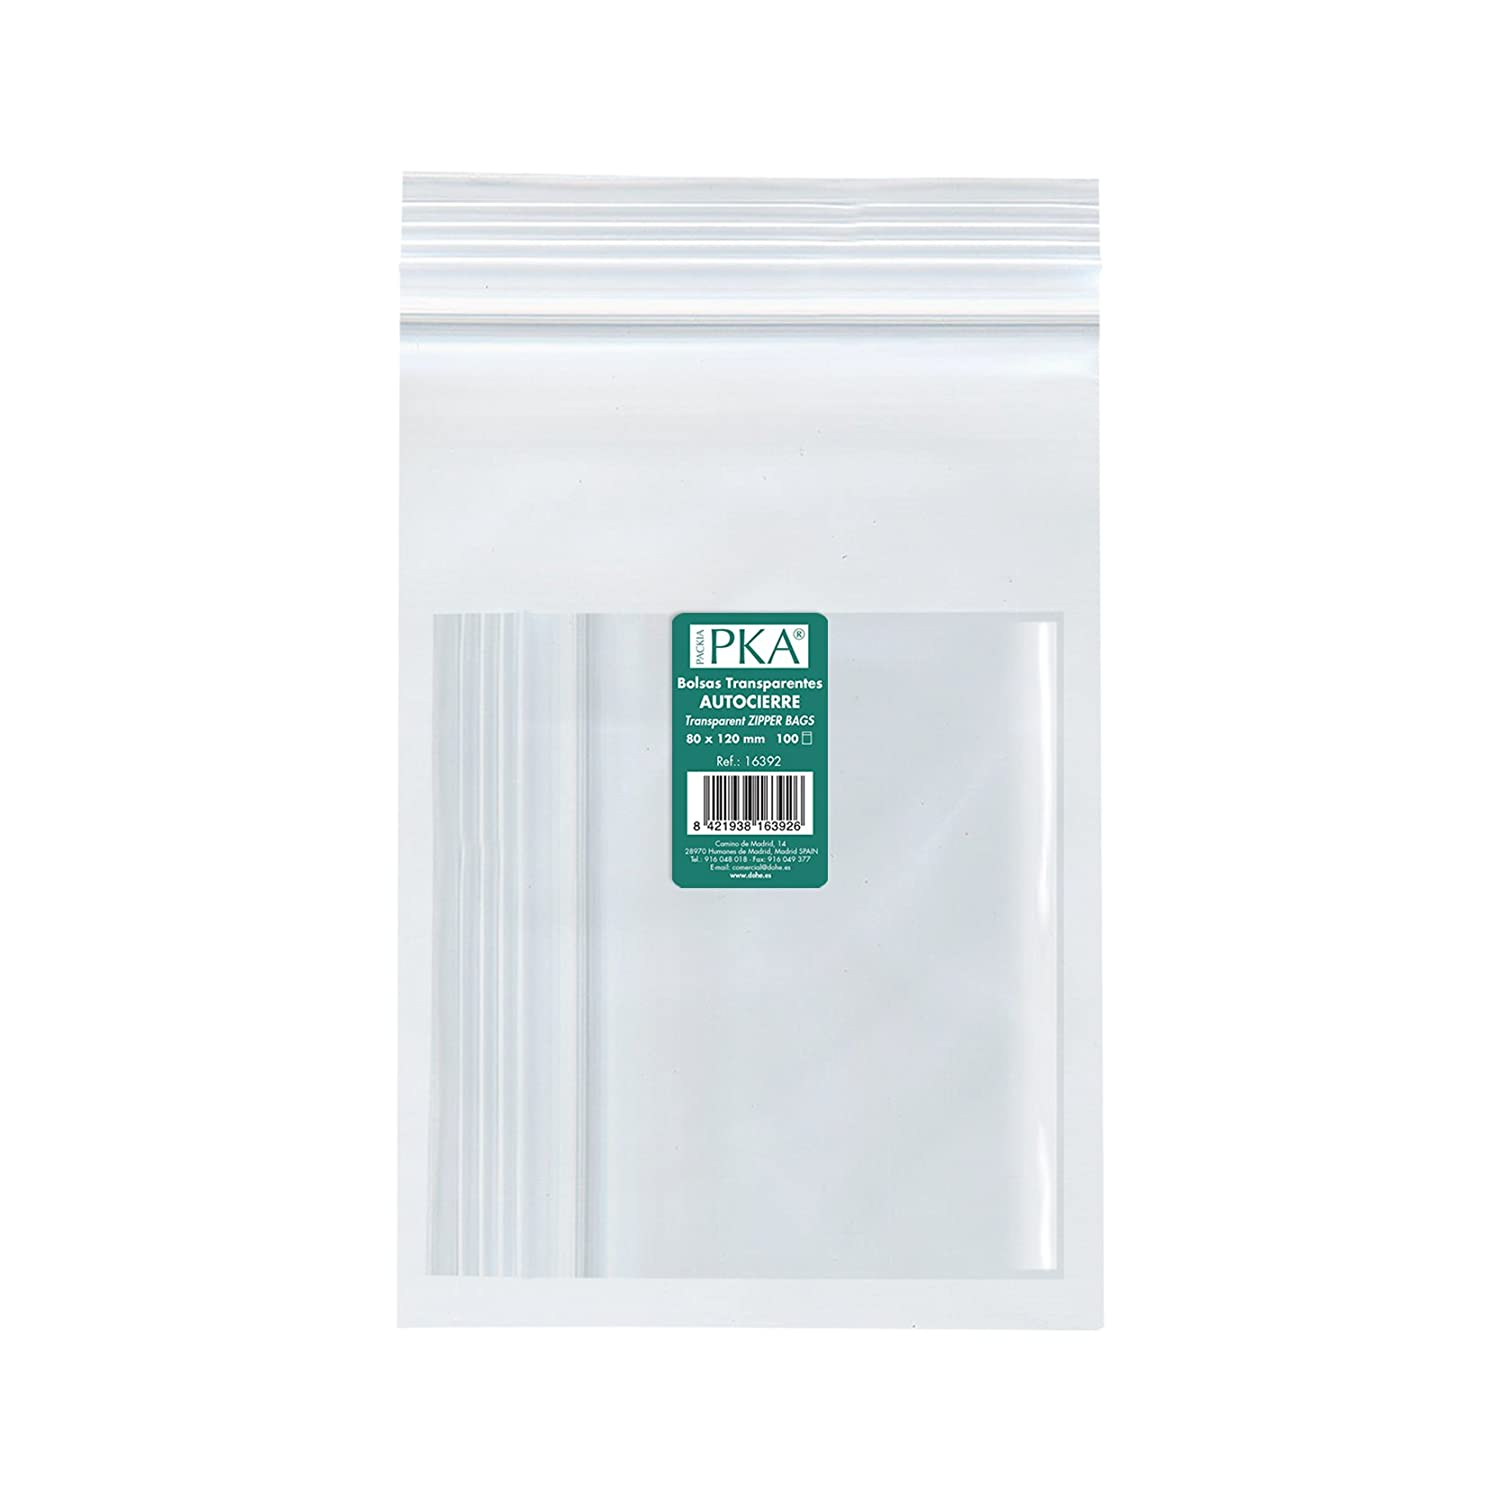 PKA 16396  –   Pack of 100  Re-sealable Plastic Bags 180  x 250  mm Dohe